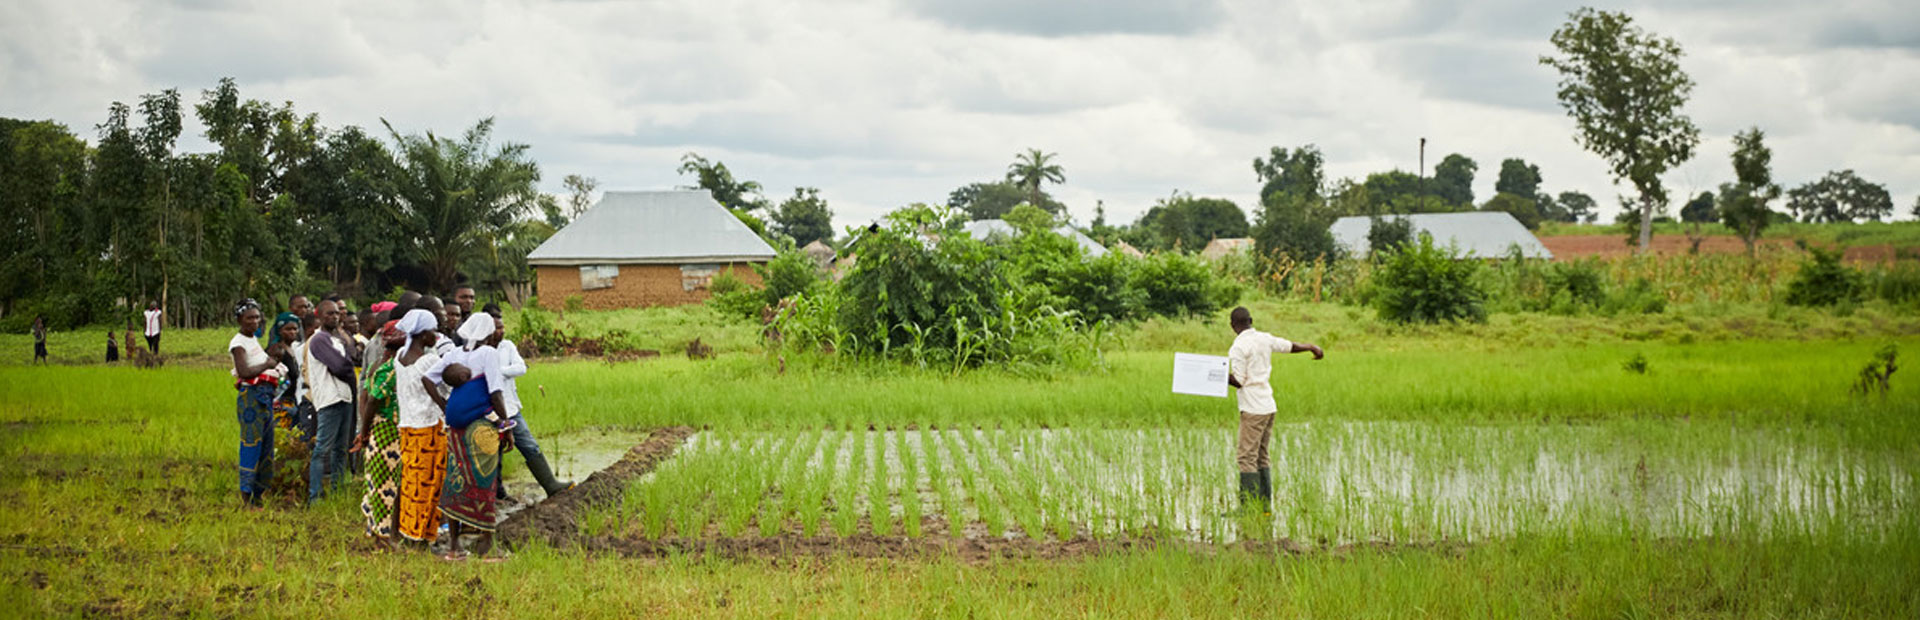 A team of rice outgrowers are being taught best planting practices by an Olam in a paddy field, Nigeria.